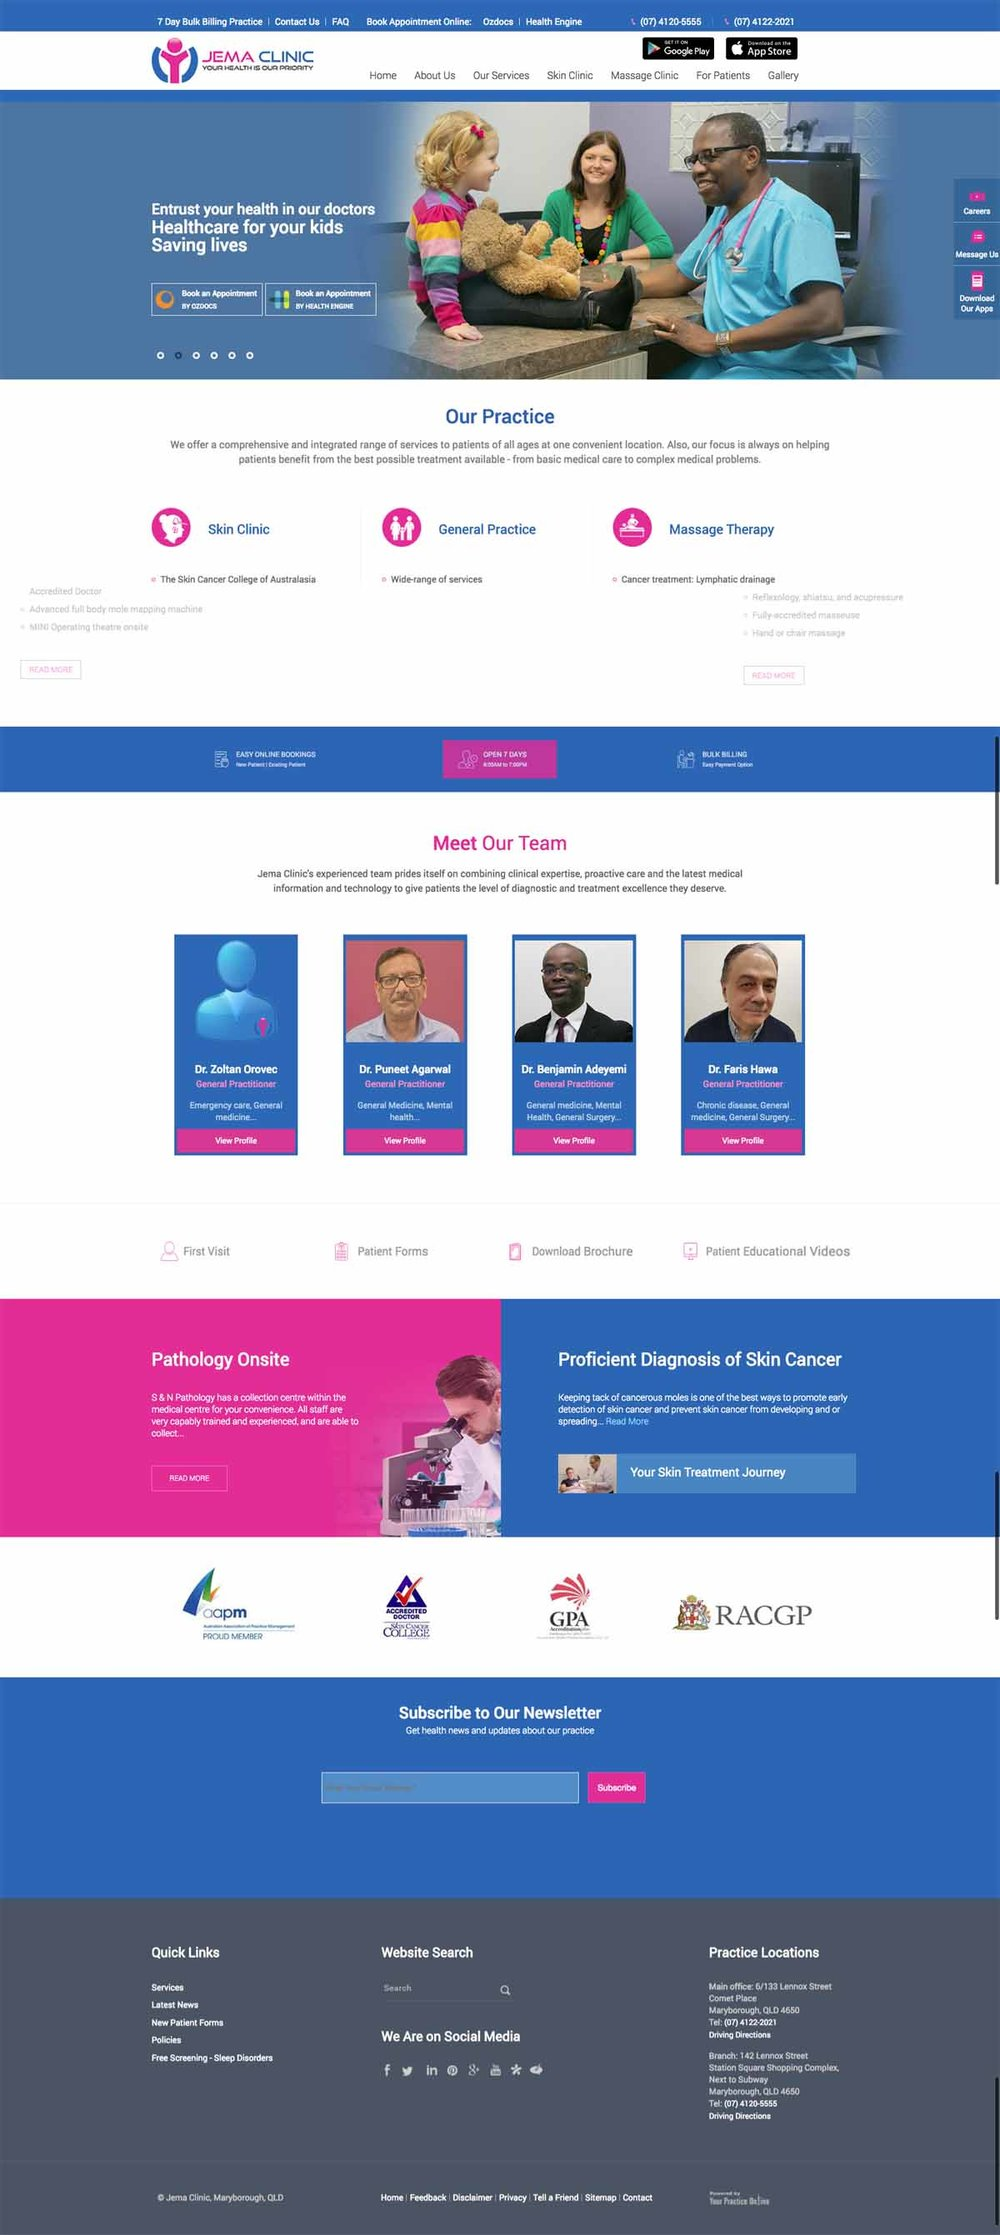 General Practice Medical Centre Website